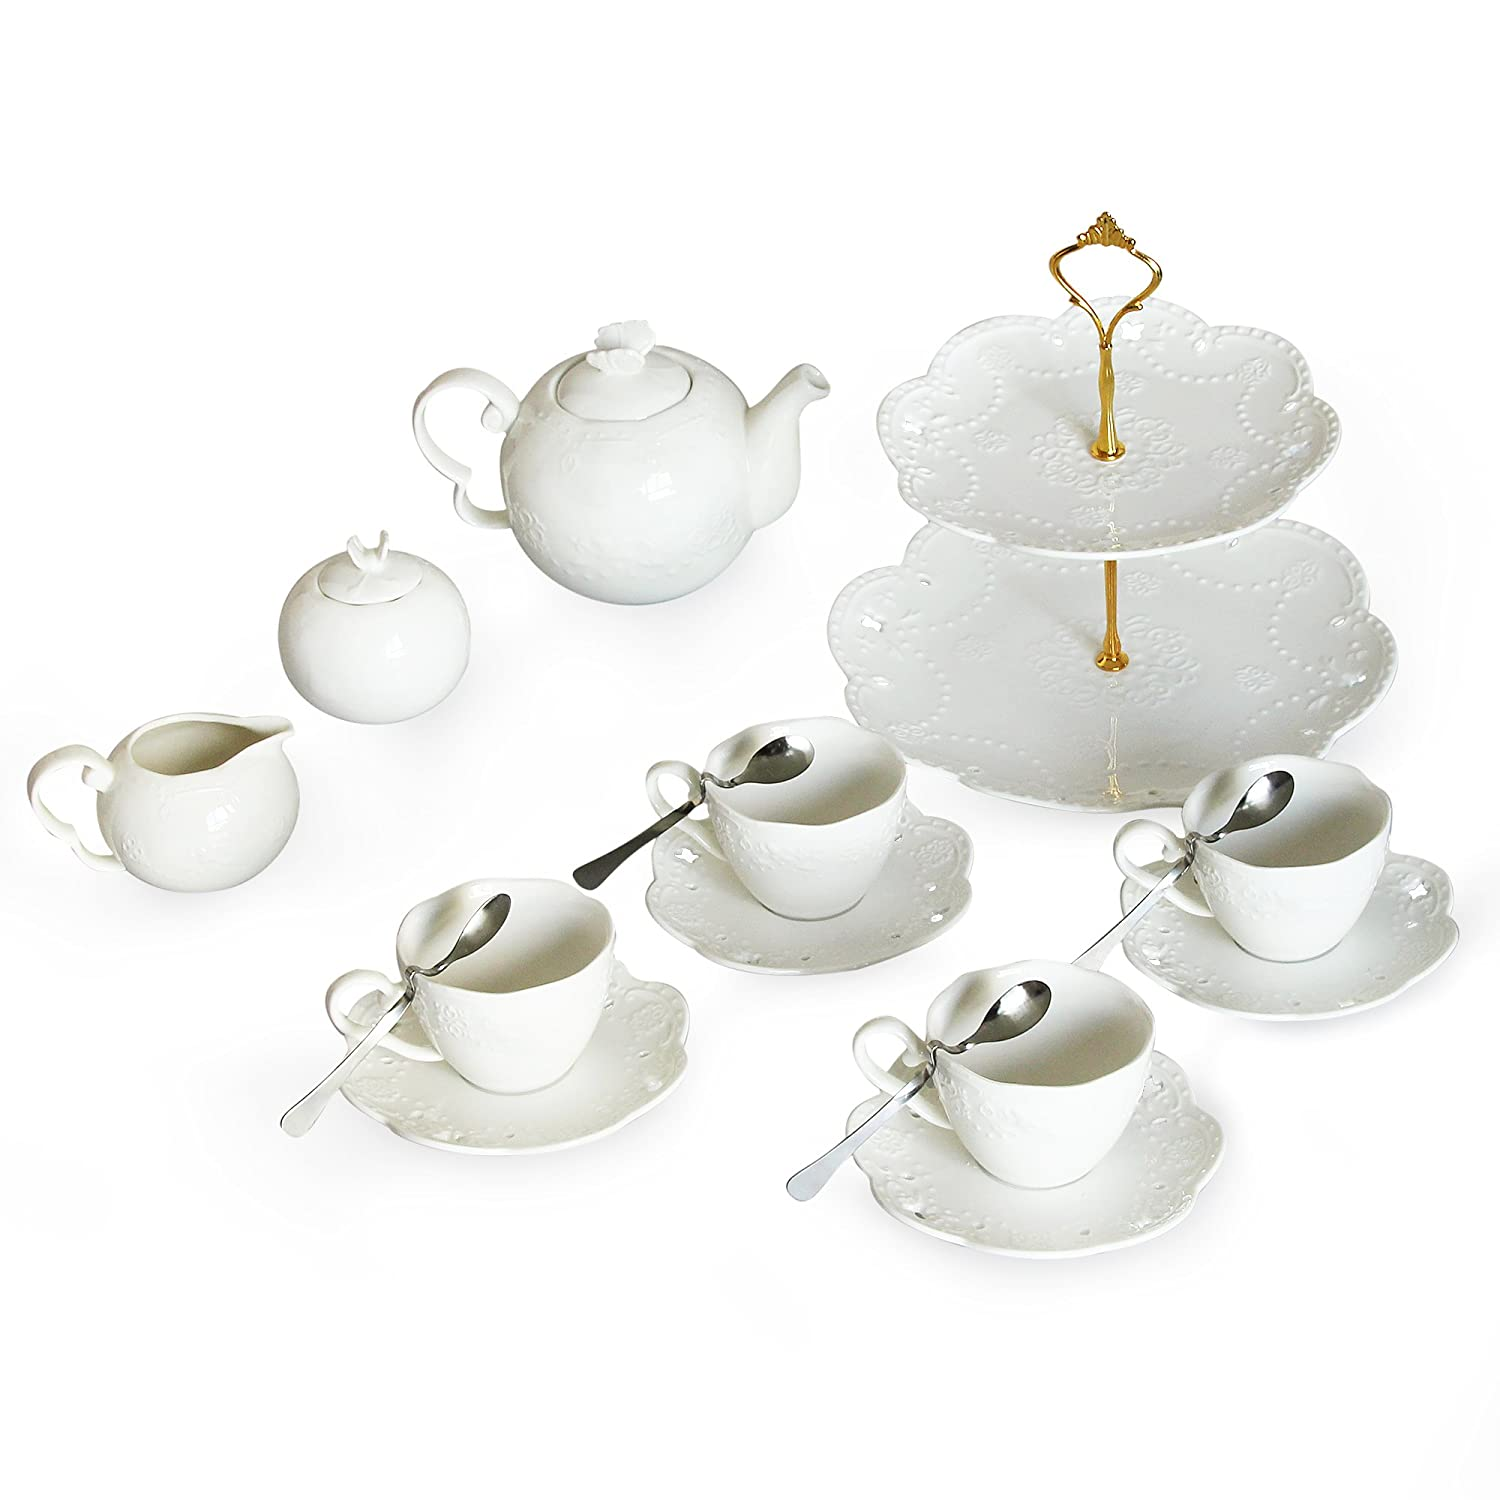 Porcelain Tea Cup and Saucer Coffee Cup Set and Dinnerware (Cup Set with Bracket, Service for 6) Shining Image